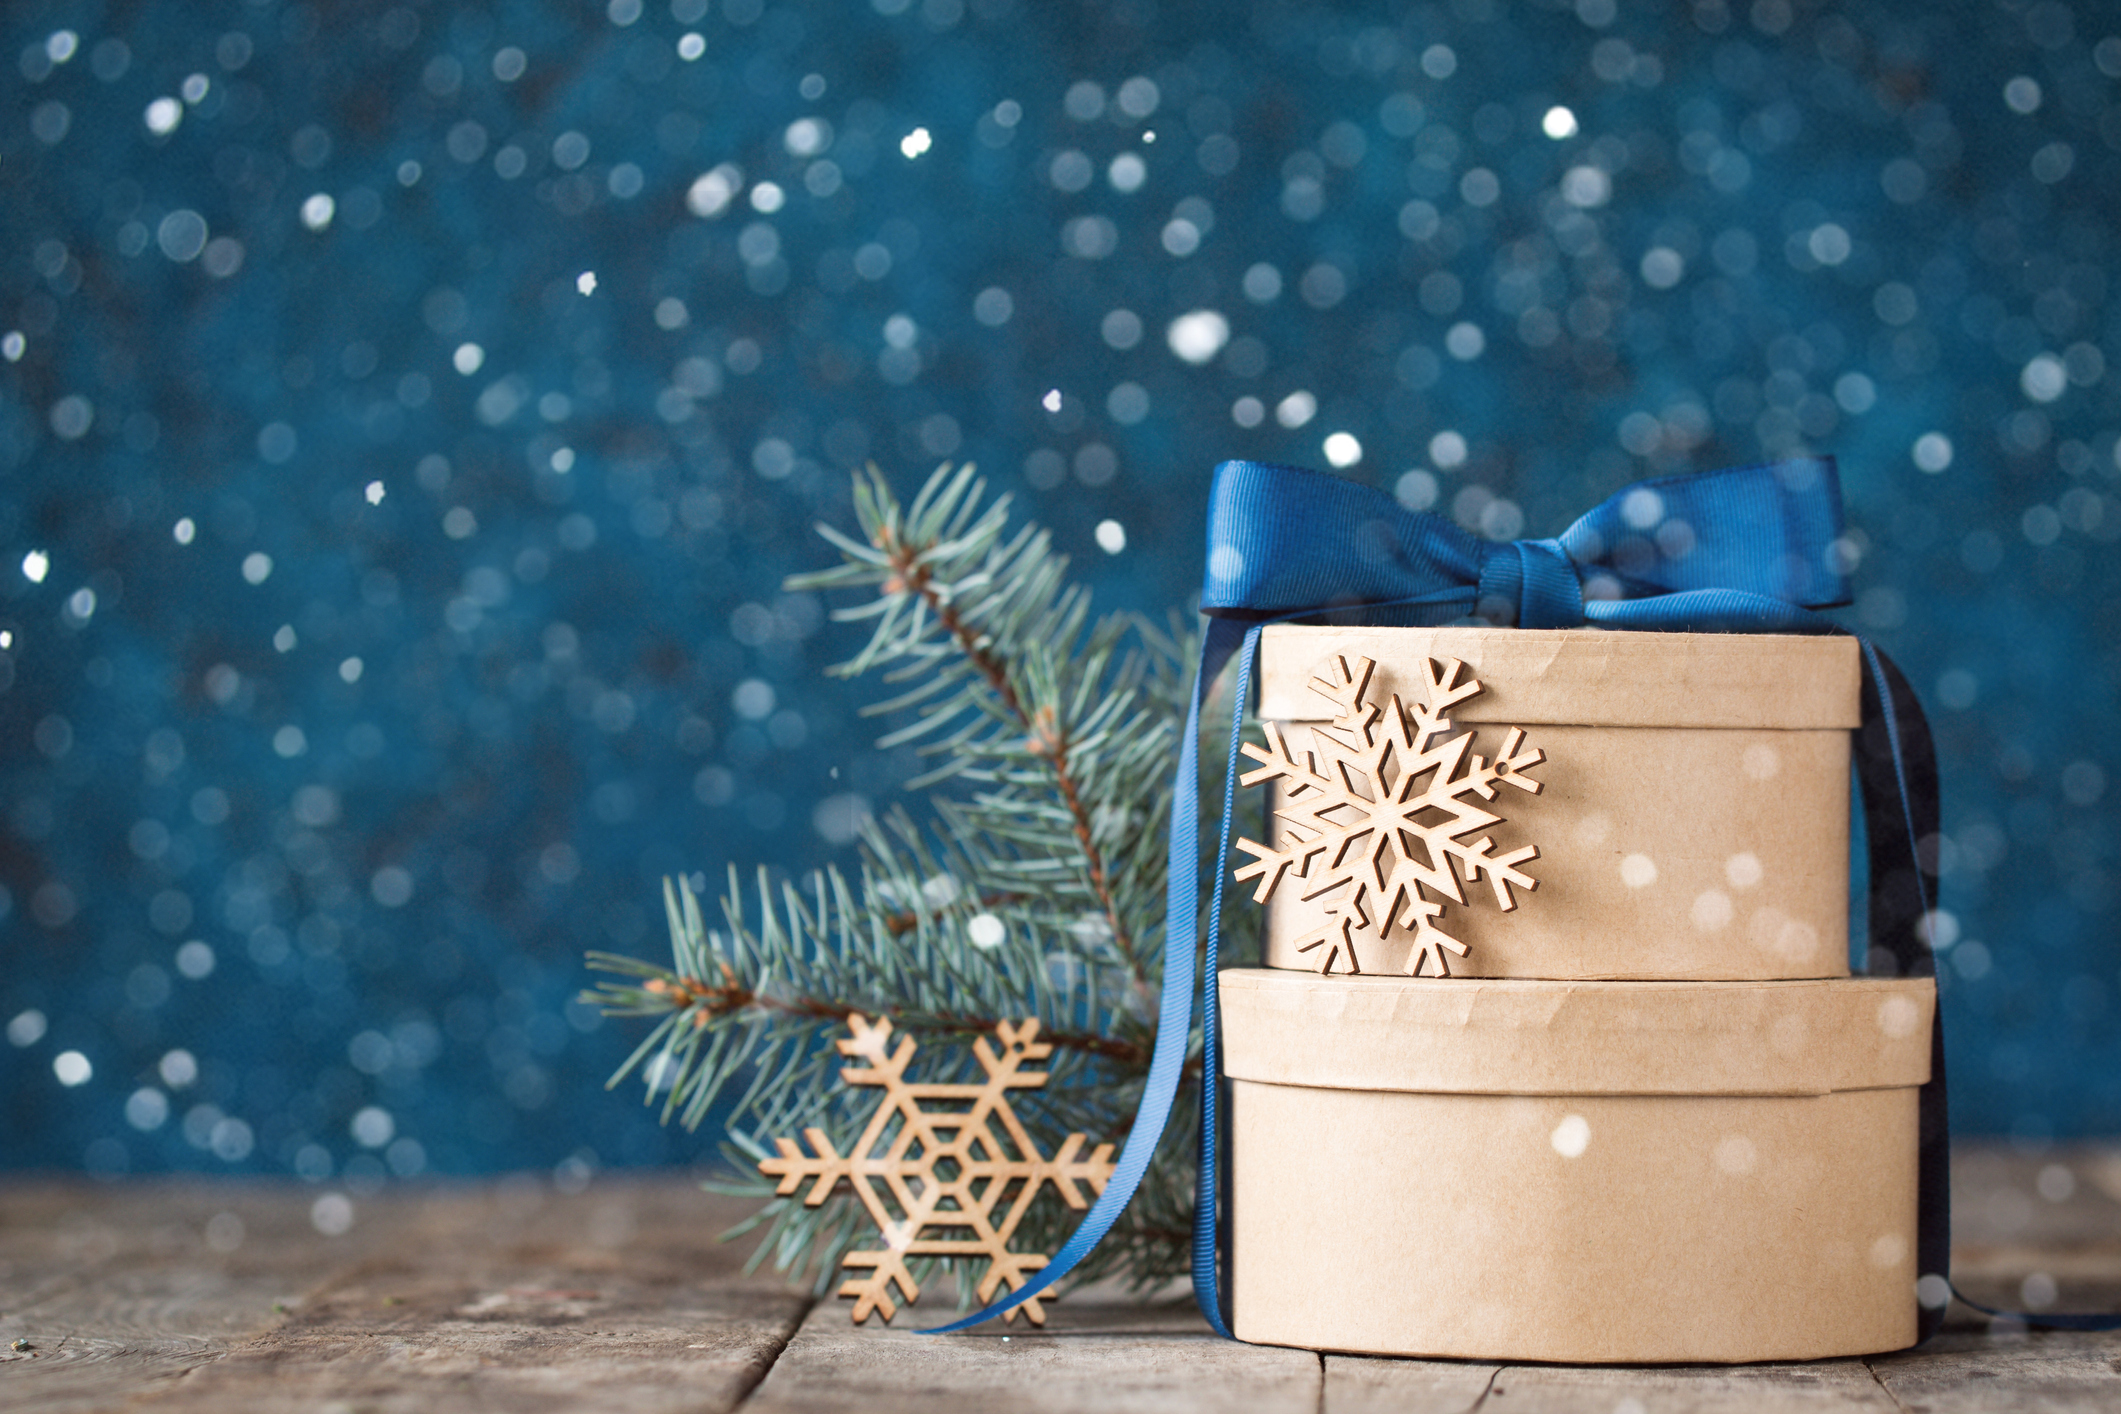 Wrapped gift boxes decorated with a blue bow, wooden snowflakes, and a pine branch.